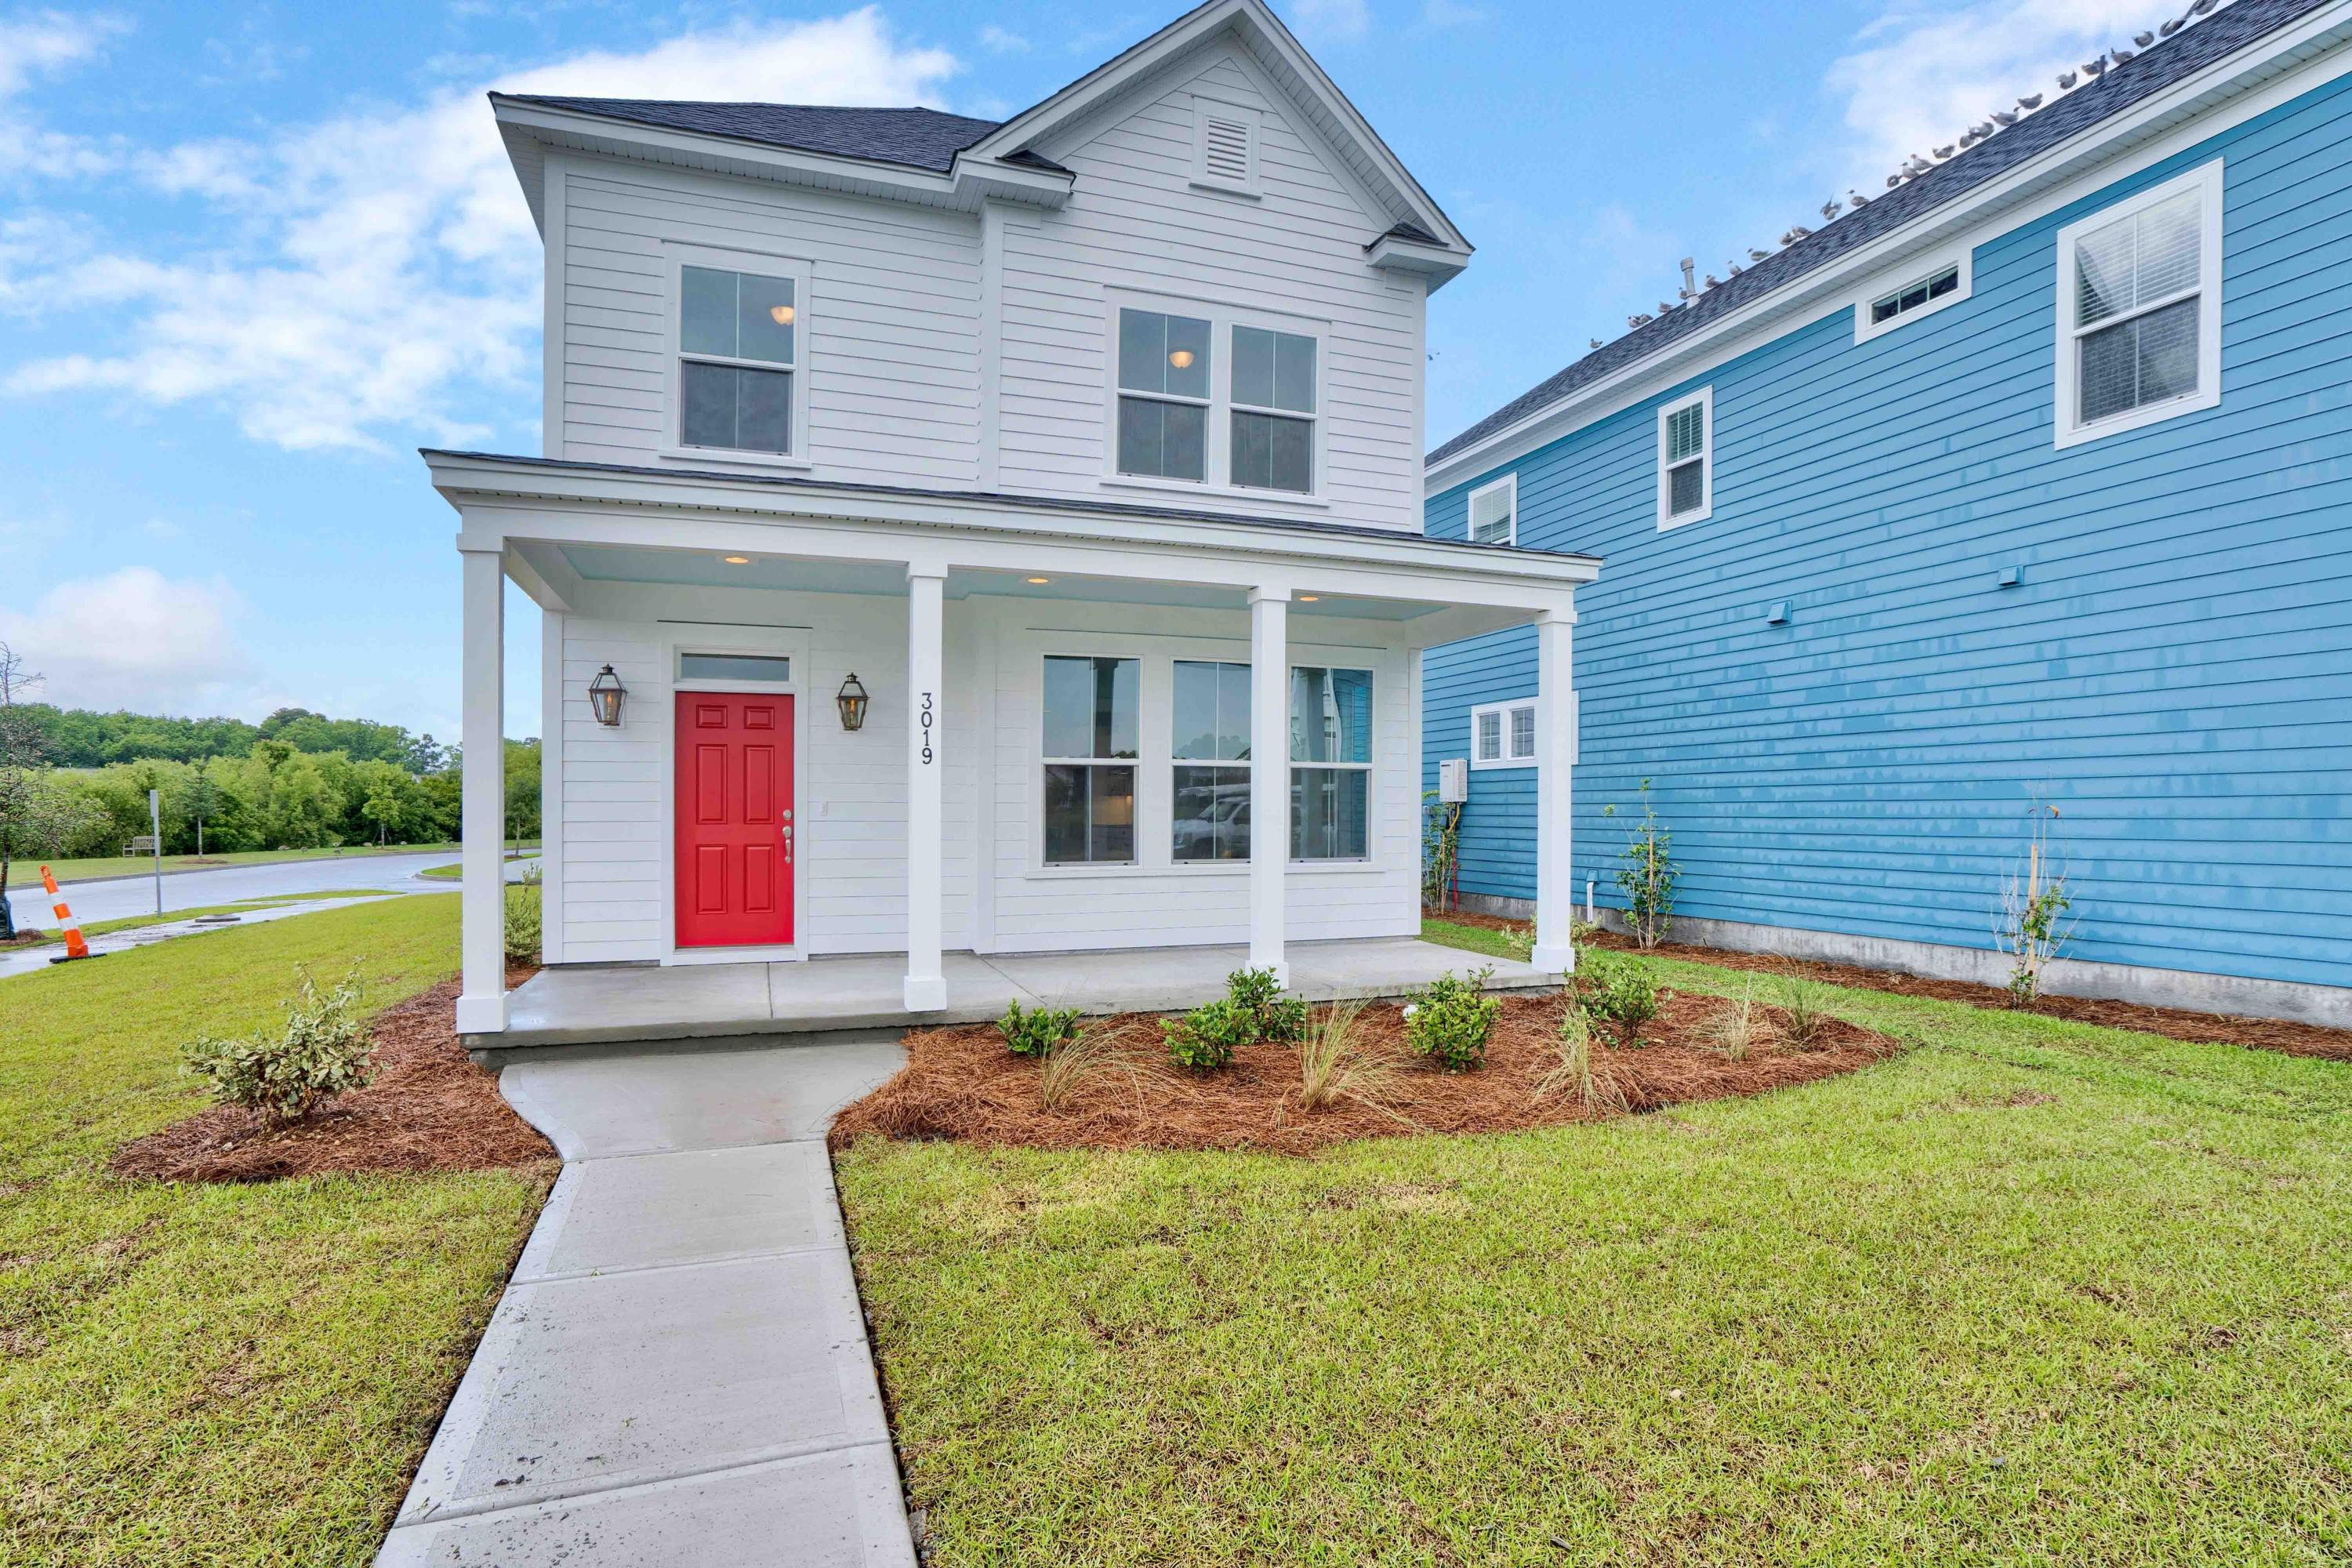 Johnston Pointe Homes For Sale - 1020 Sugarberry, Johns Island, SC - 0